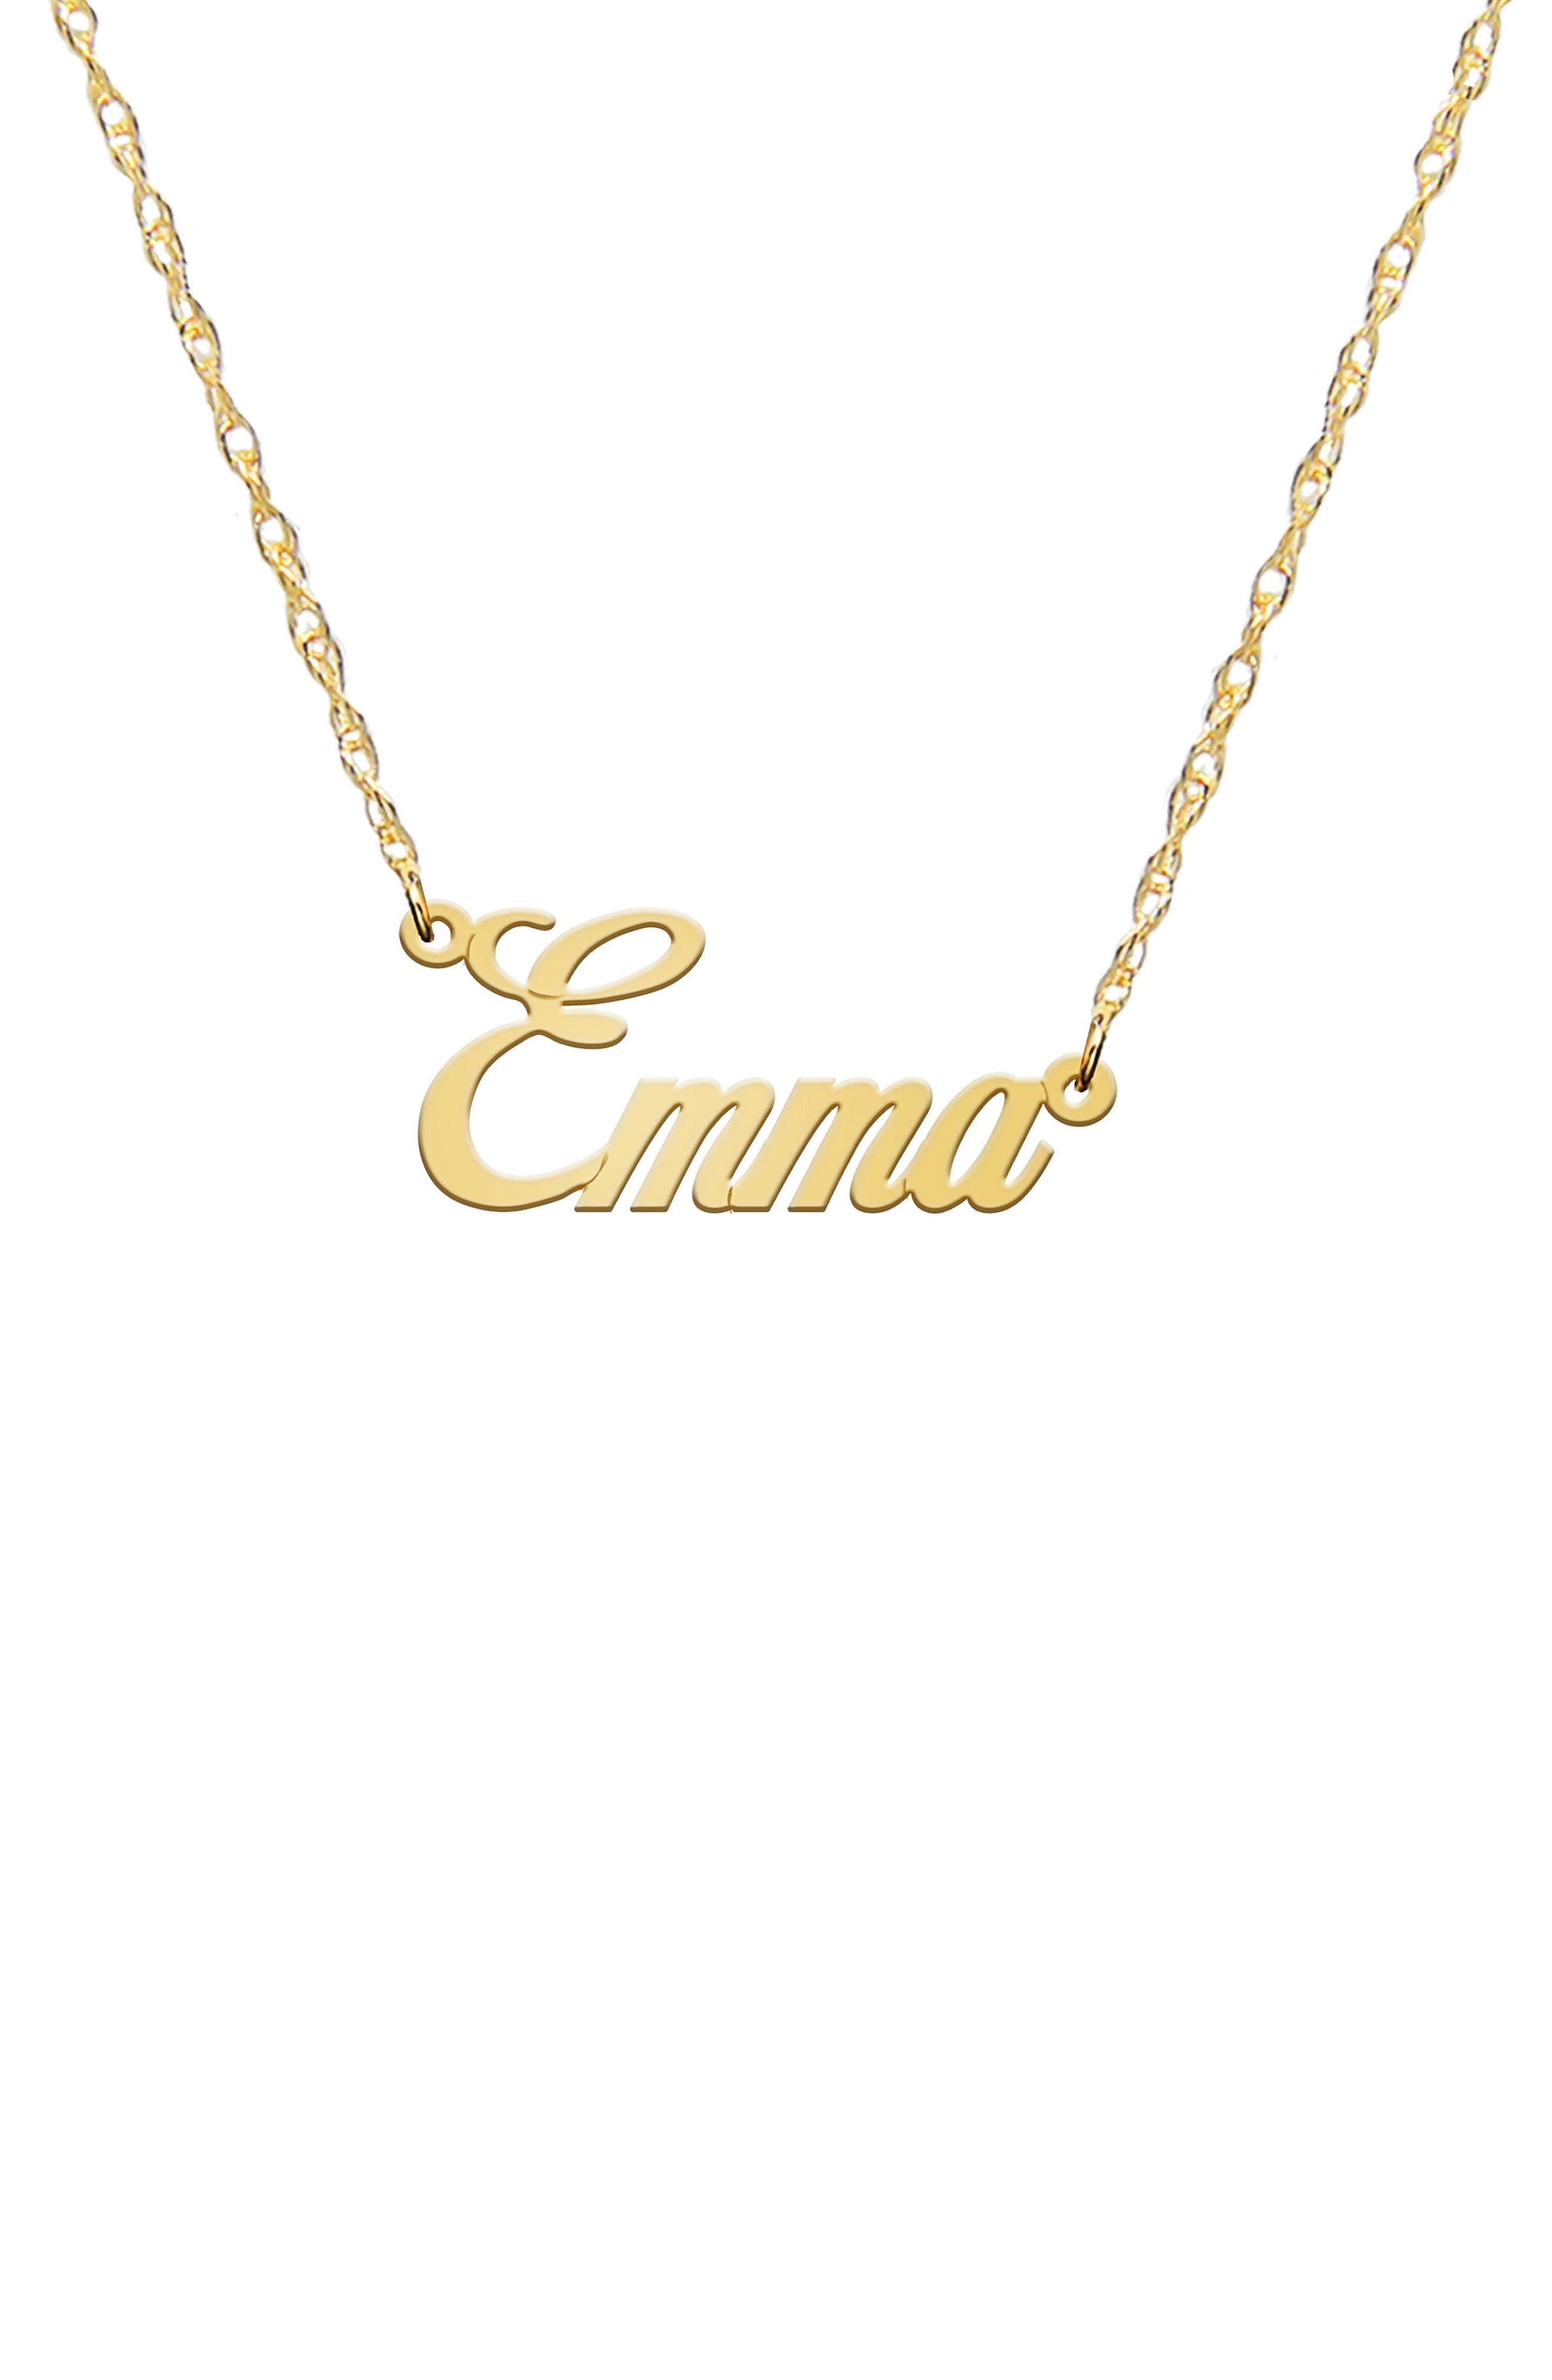 Jane Basch Personalized Nameplate Necklace,                         Main,                         color, 14K YELLOW GOLD